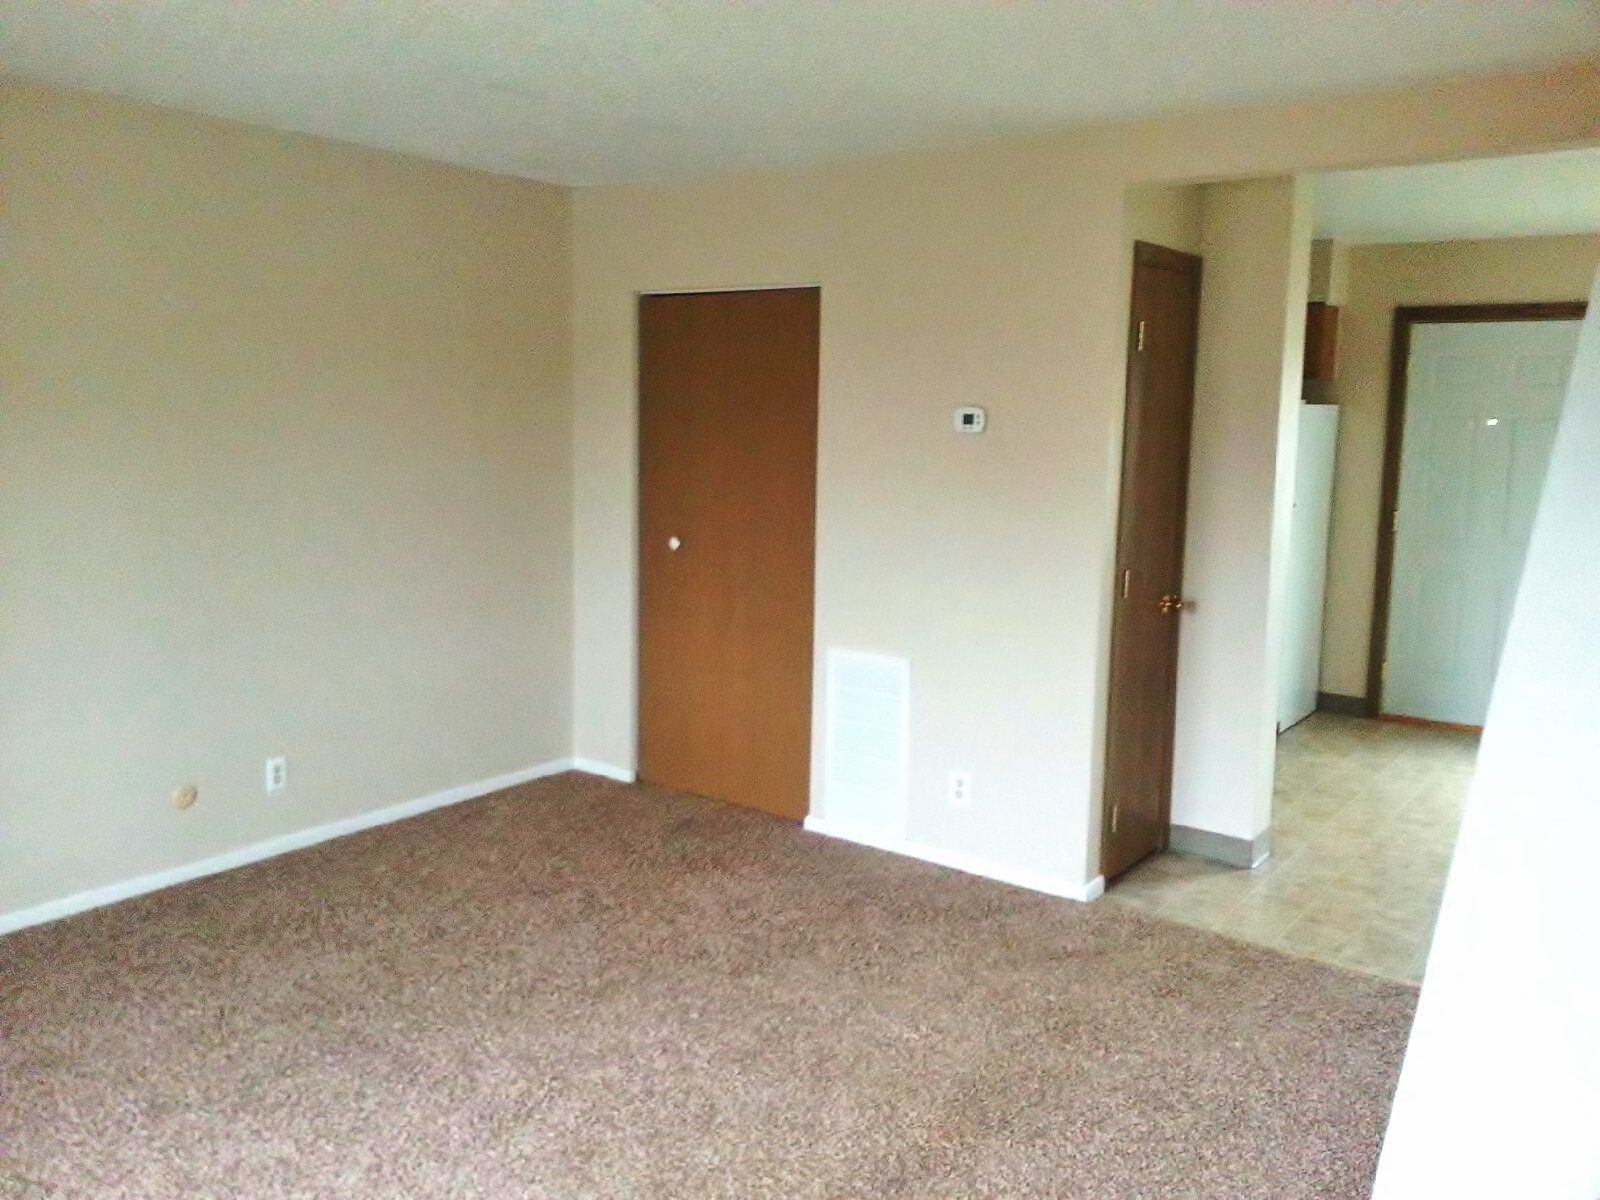 Pleasant Hill Village Town Home Rentals in Rapid City, SD - living room